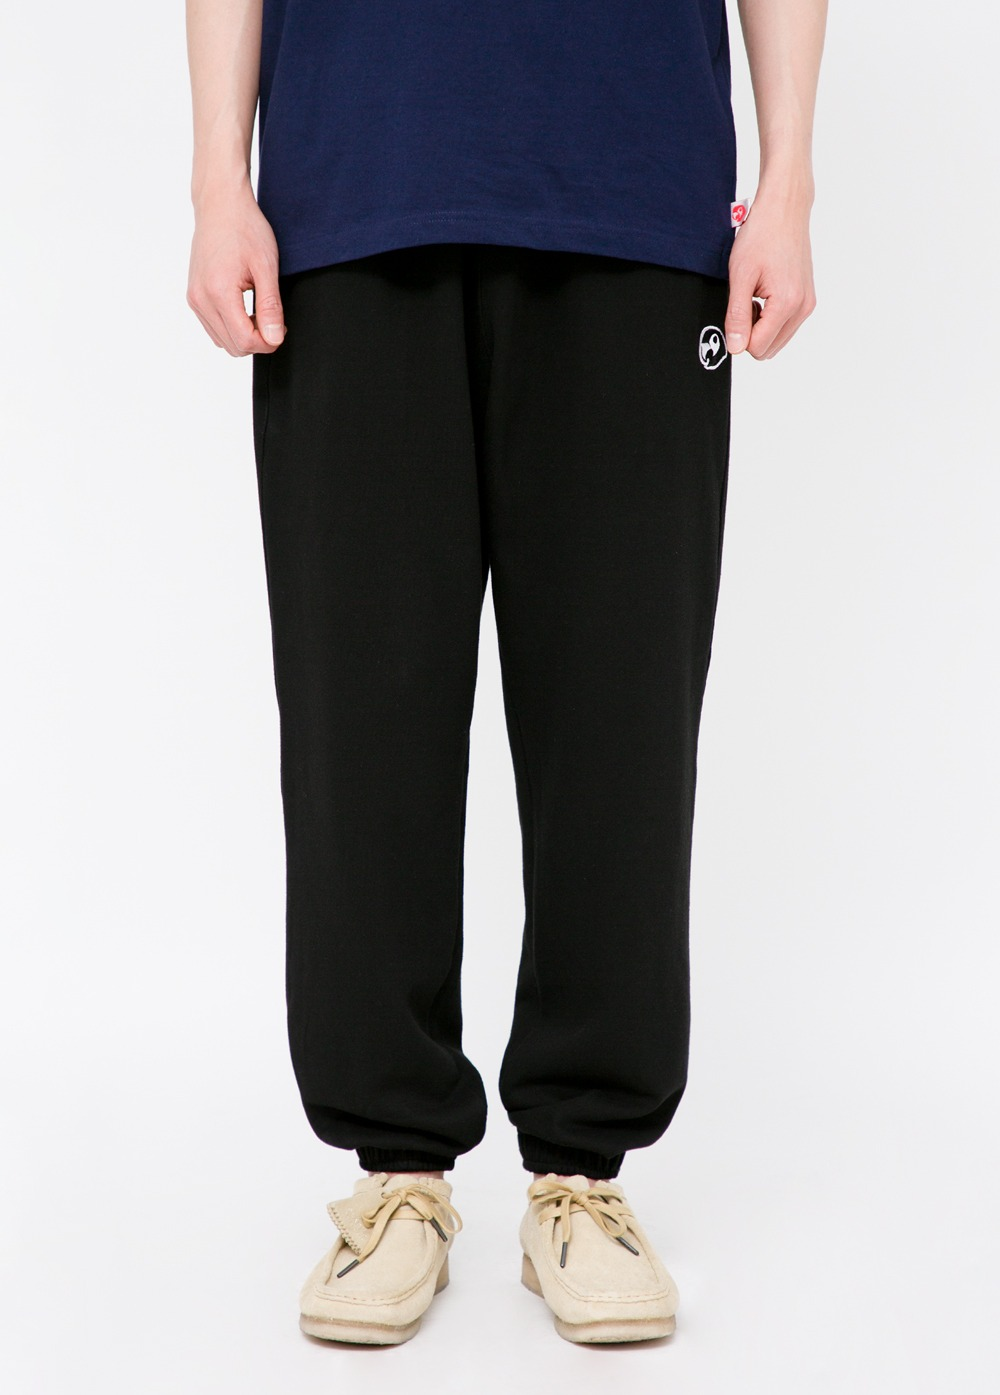 KANCO LOGO SWEATPANTS black